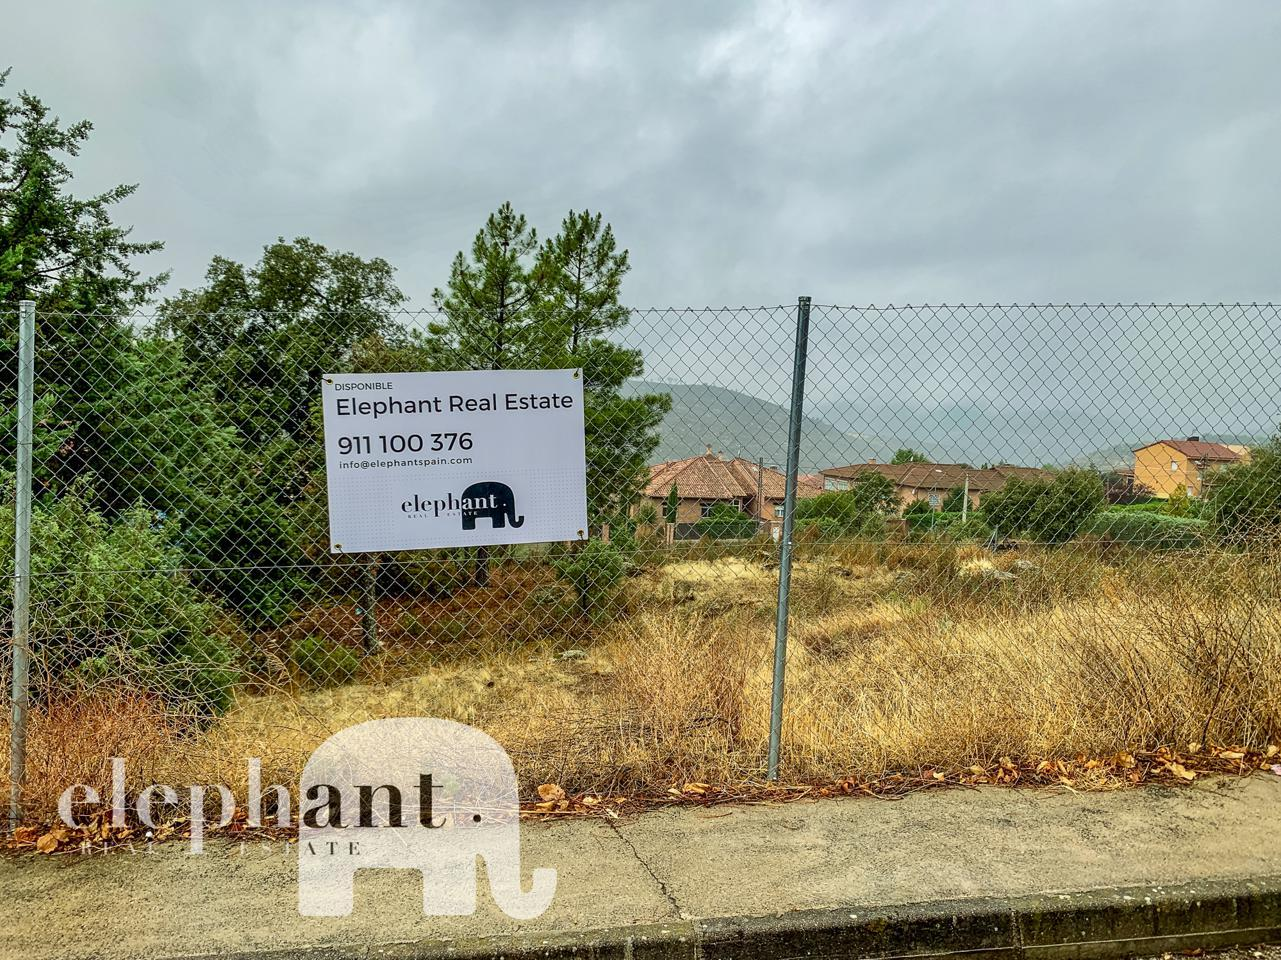 Elephant Real Estate